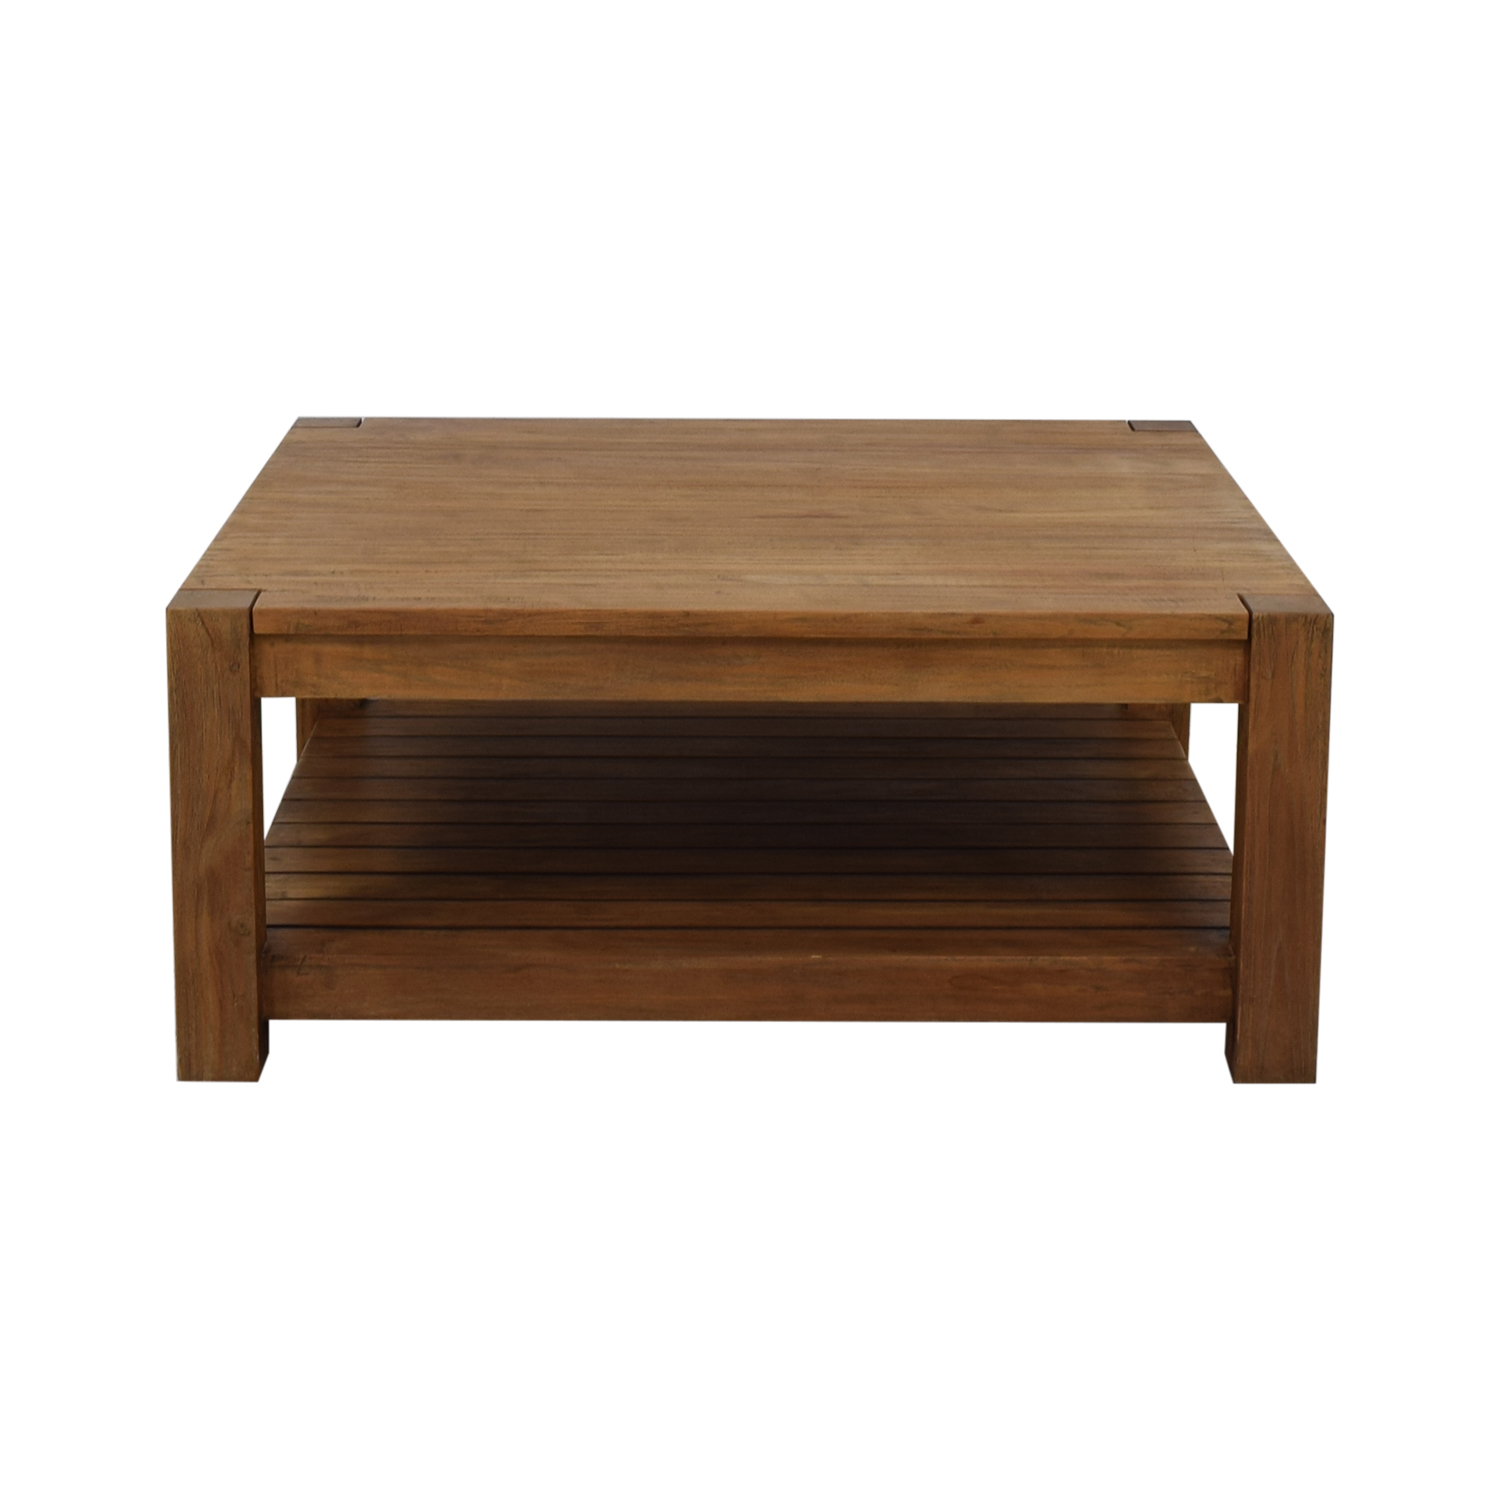 66 off crate barrel crate barrel edgewood square coffee table tables